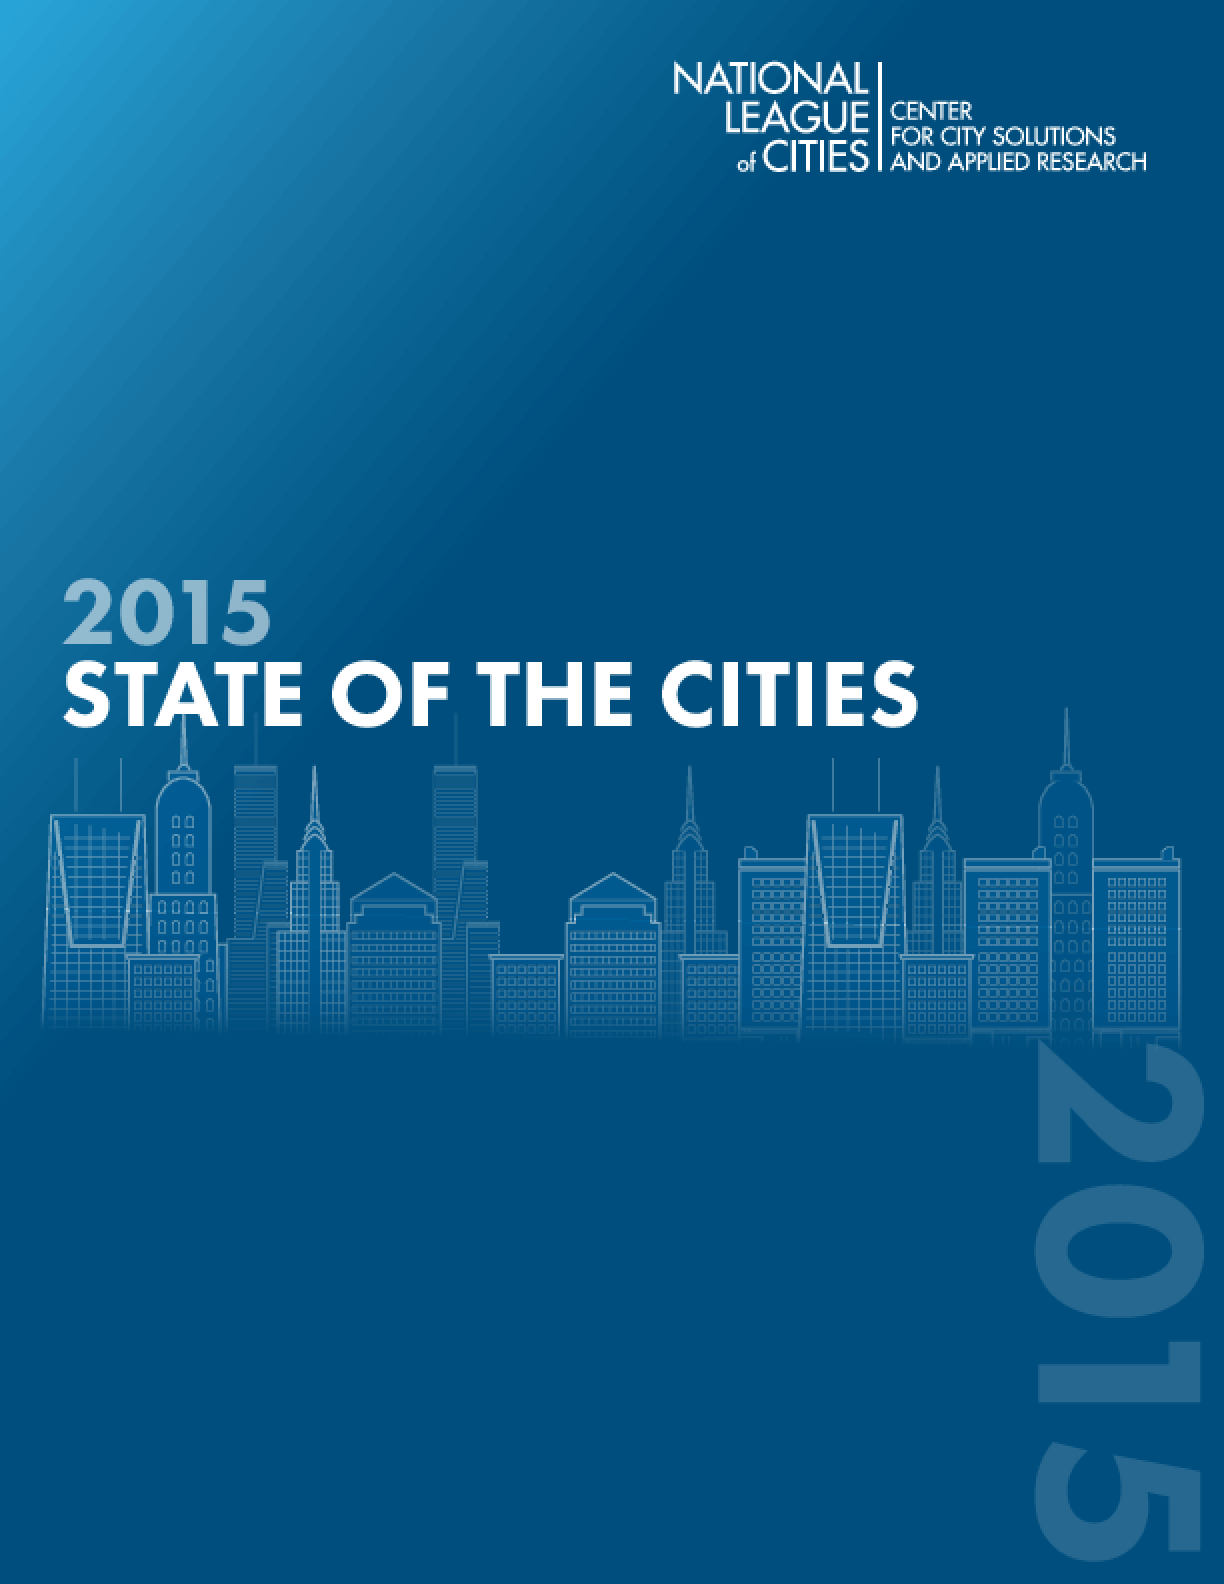 2015 State of the Cities